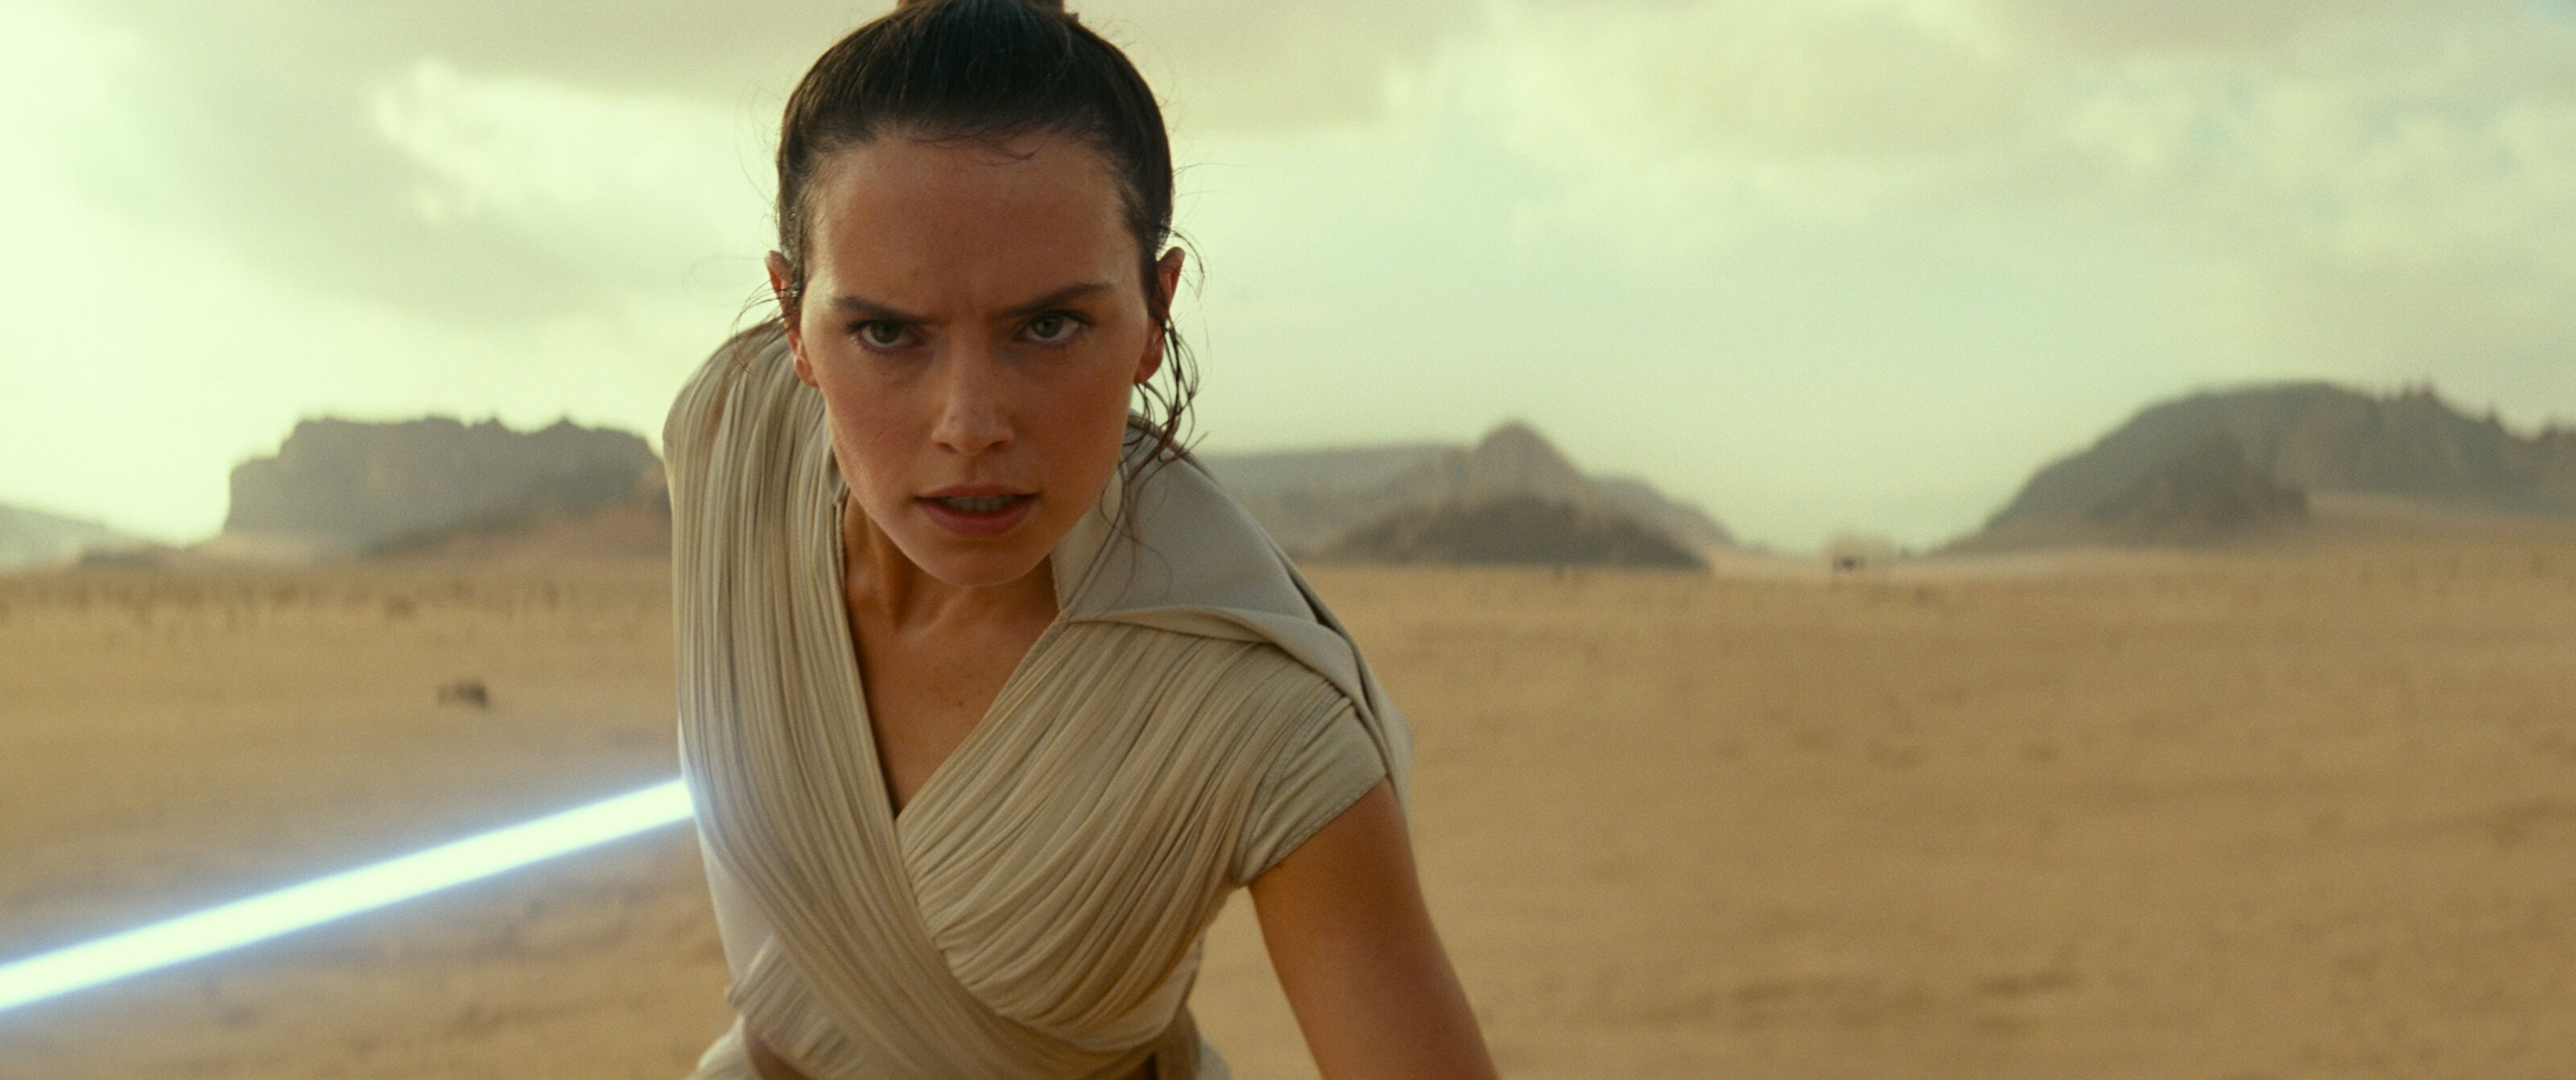 SEE IT: The final trailer for Star Wars: The Rise of Skywalker is here